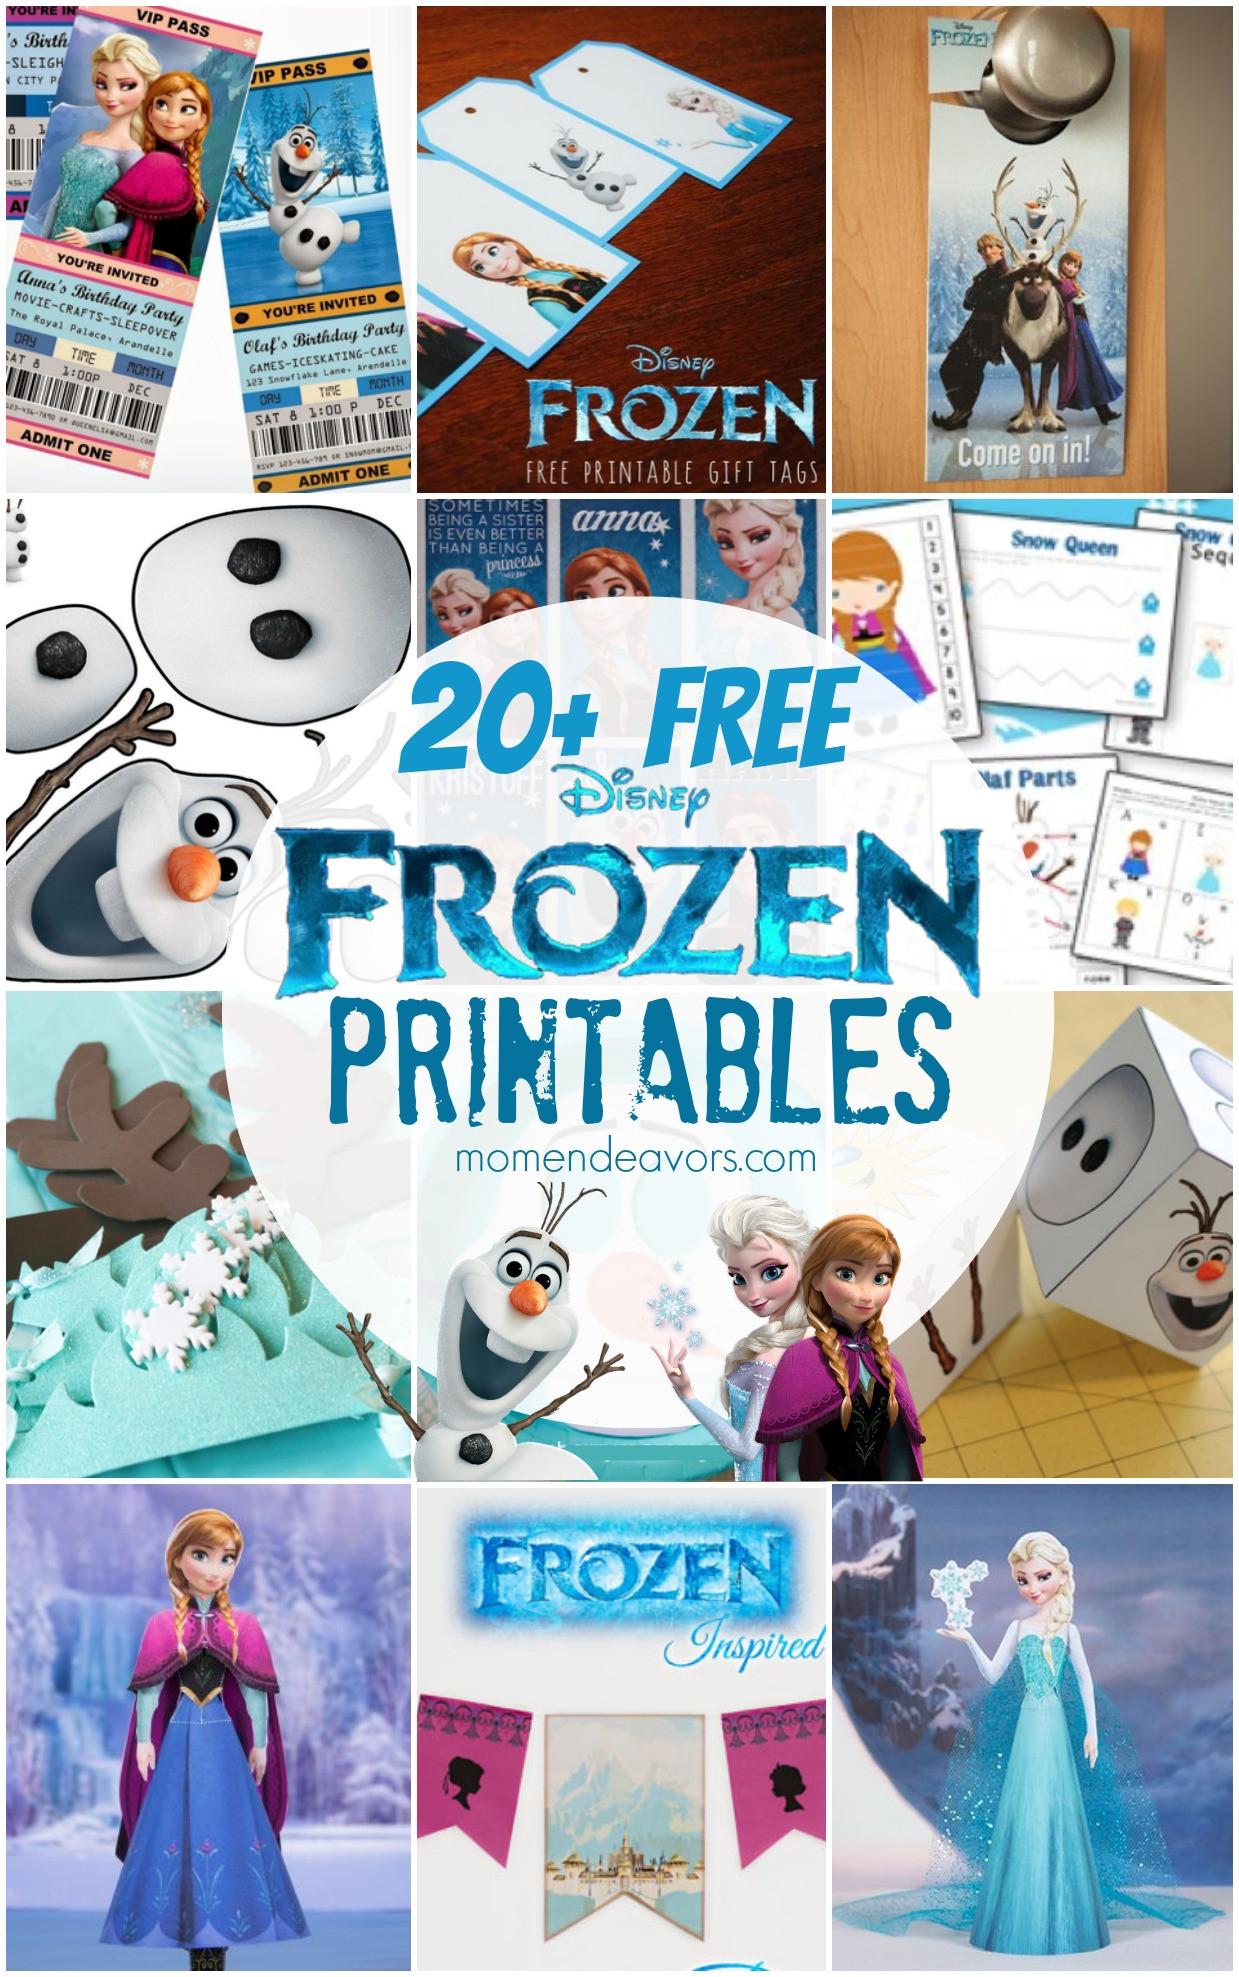 Frozen Invite Printable 20 Free Disney Frozen Printables Activity Sheets & Party